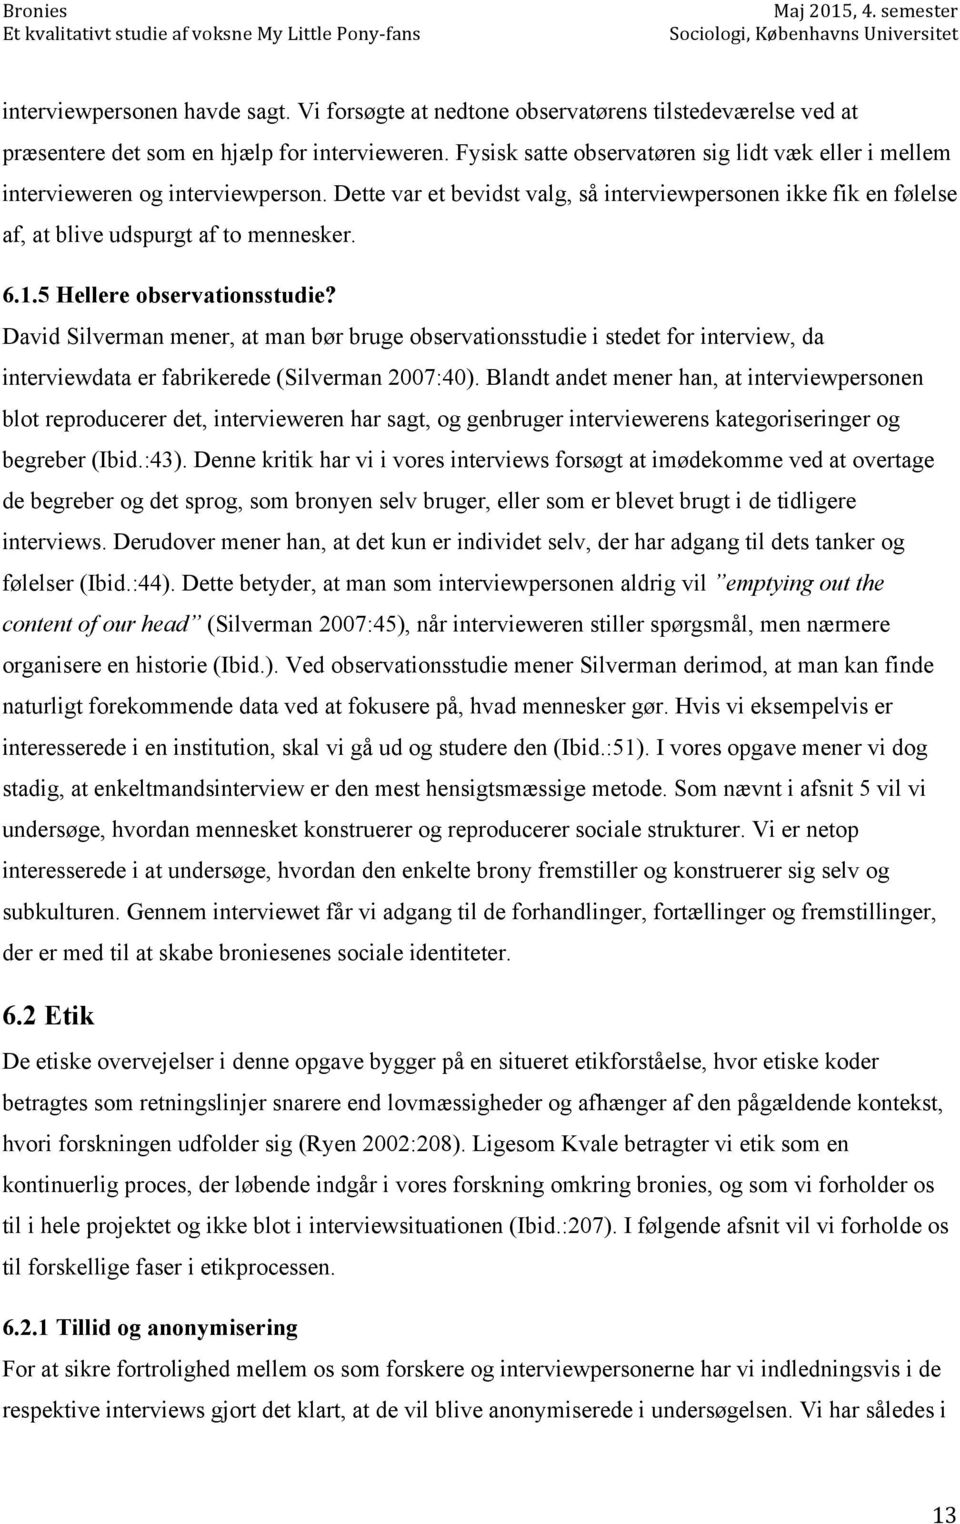 5 Hellere observationsstudie? David Silverman mener, at man bør bruge observationsstudie i stedet for interview, da interviewdata er fabrikerede (Silverman 2007:40).